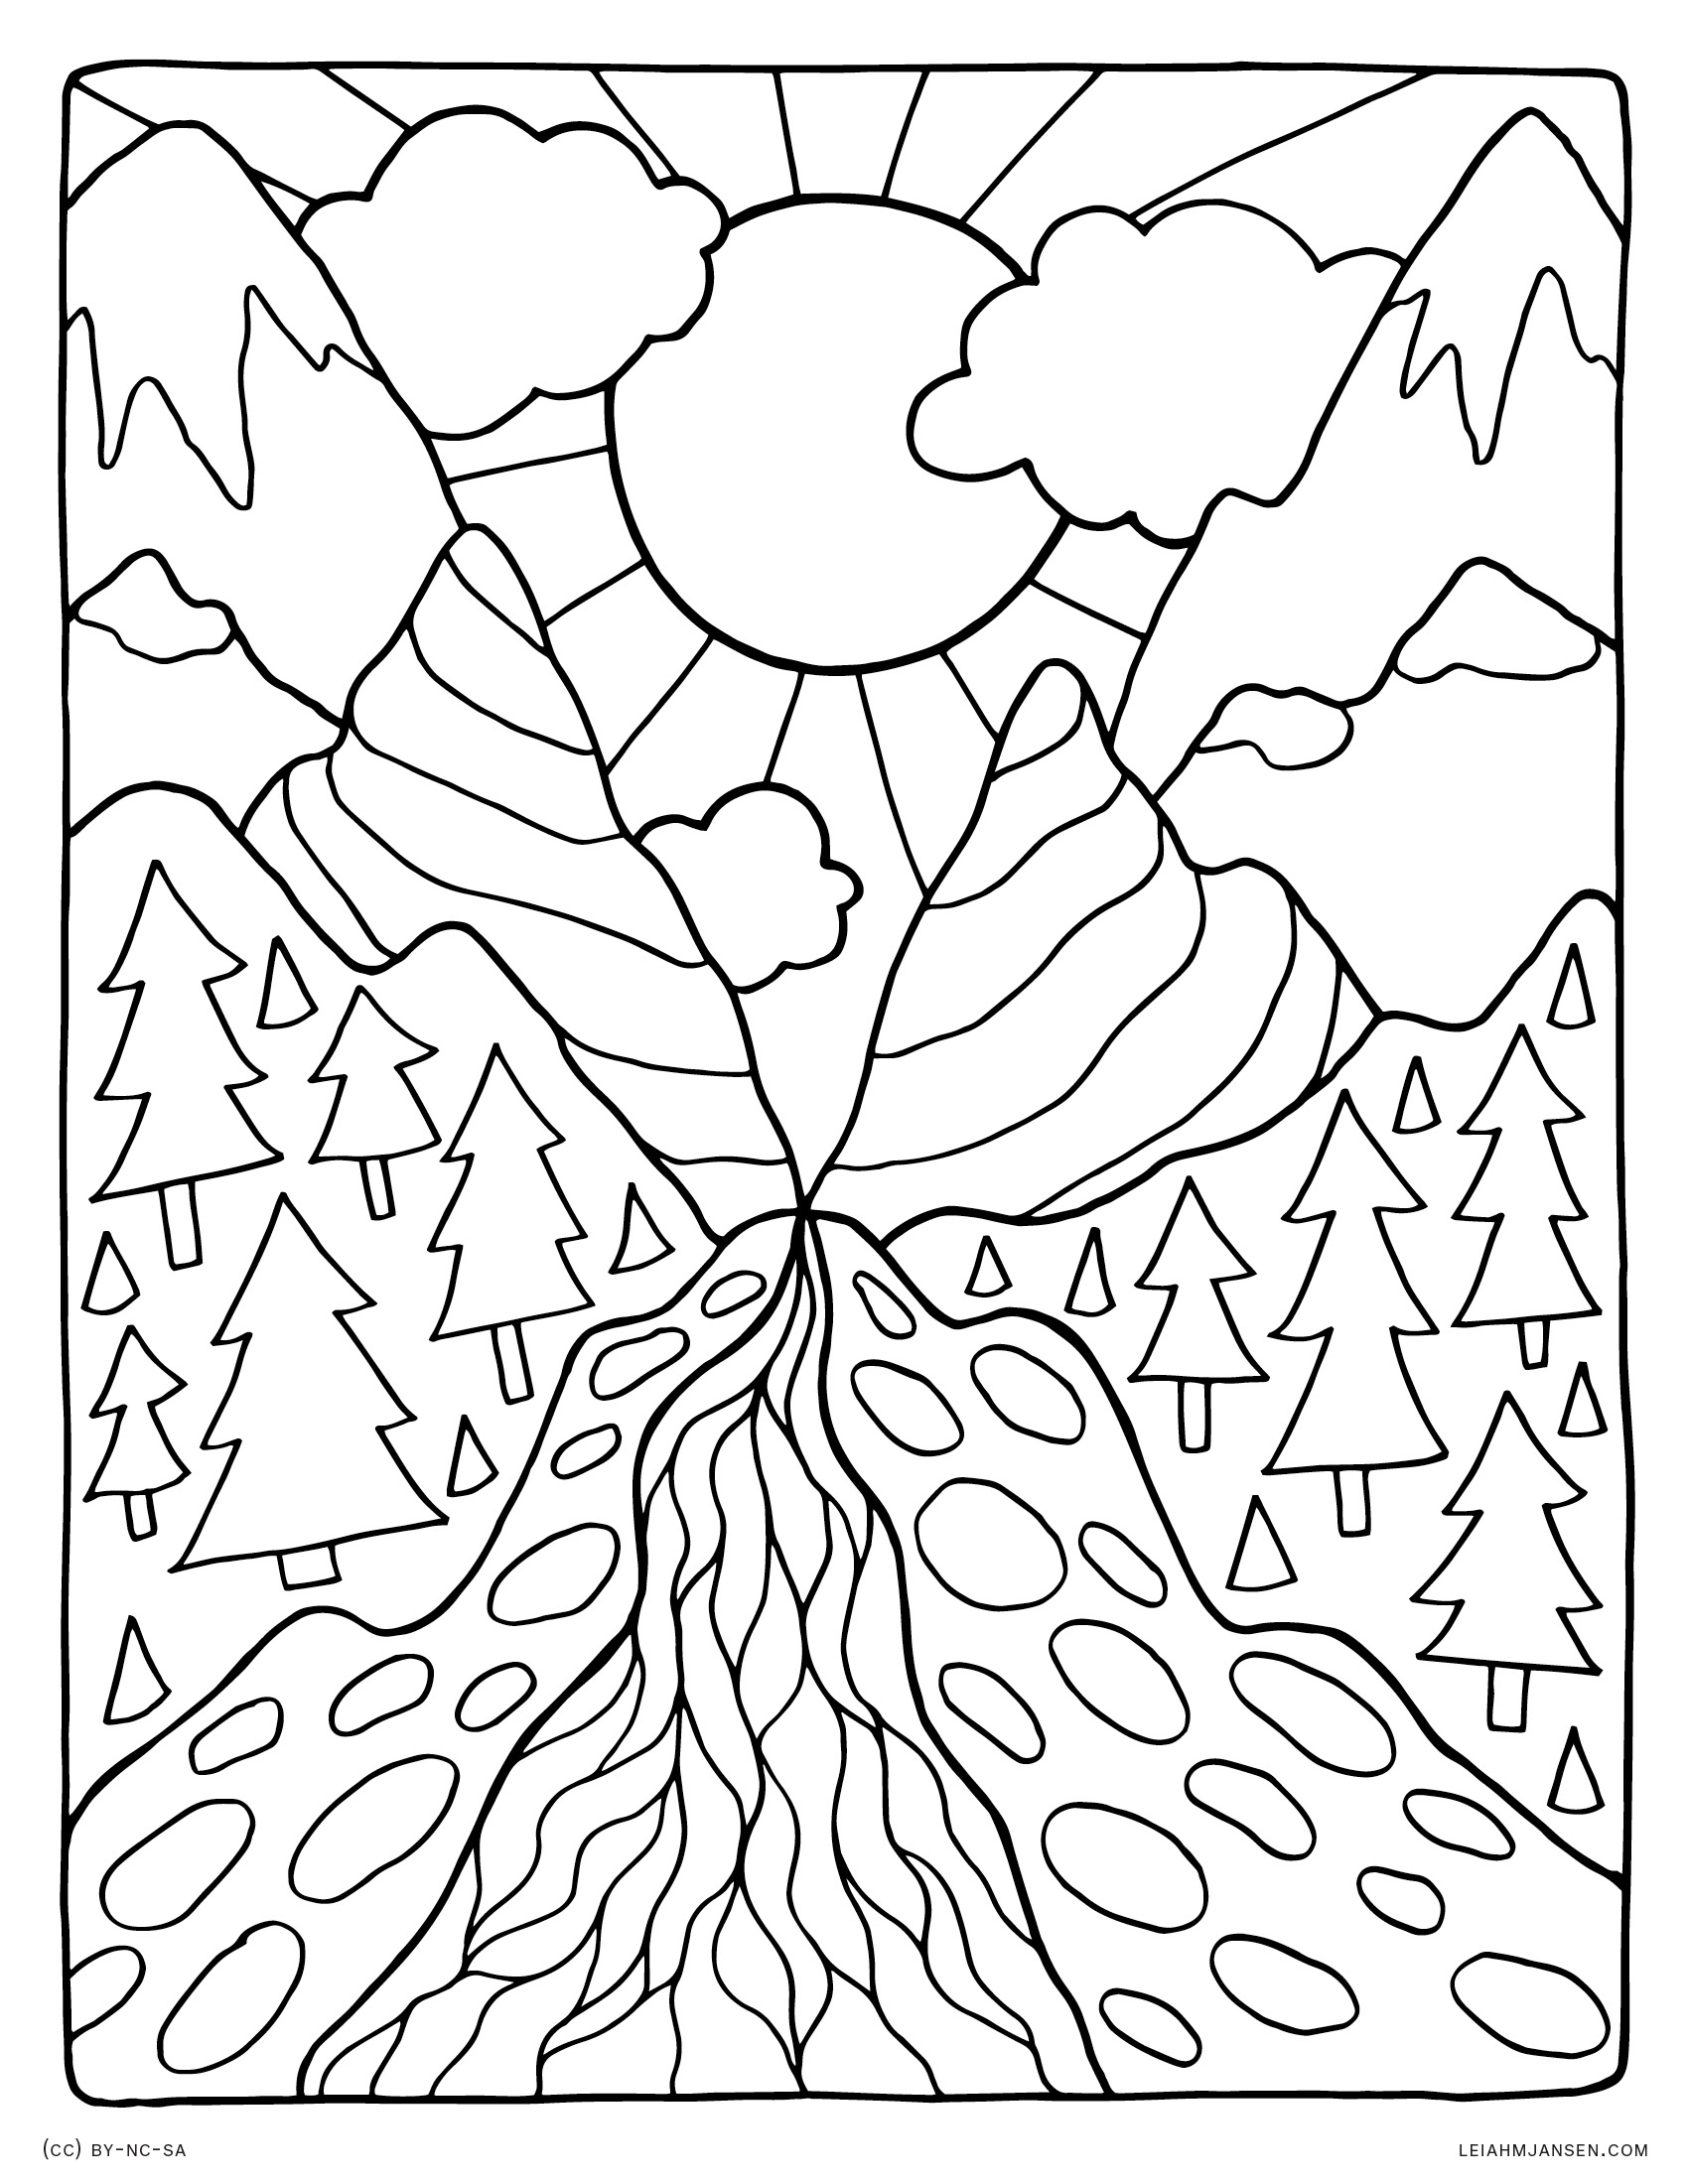 nature colouring pages nature coloring pages to download and print for free pages colouring nature